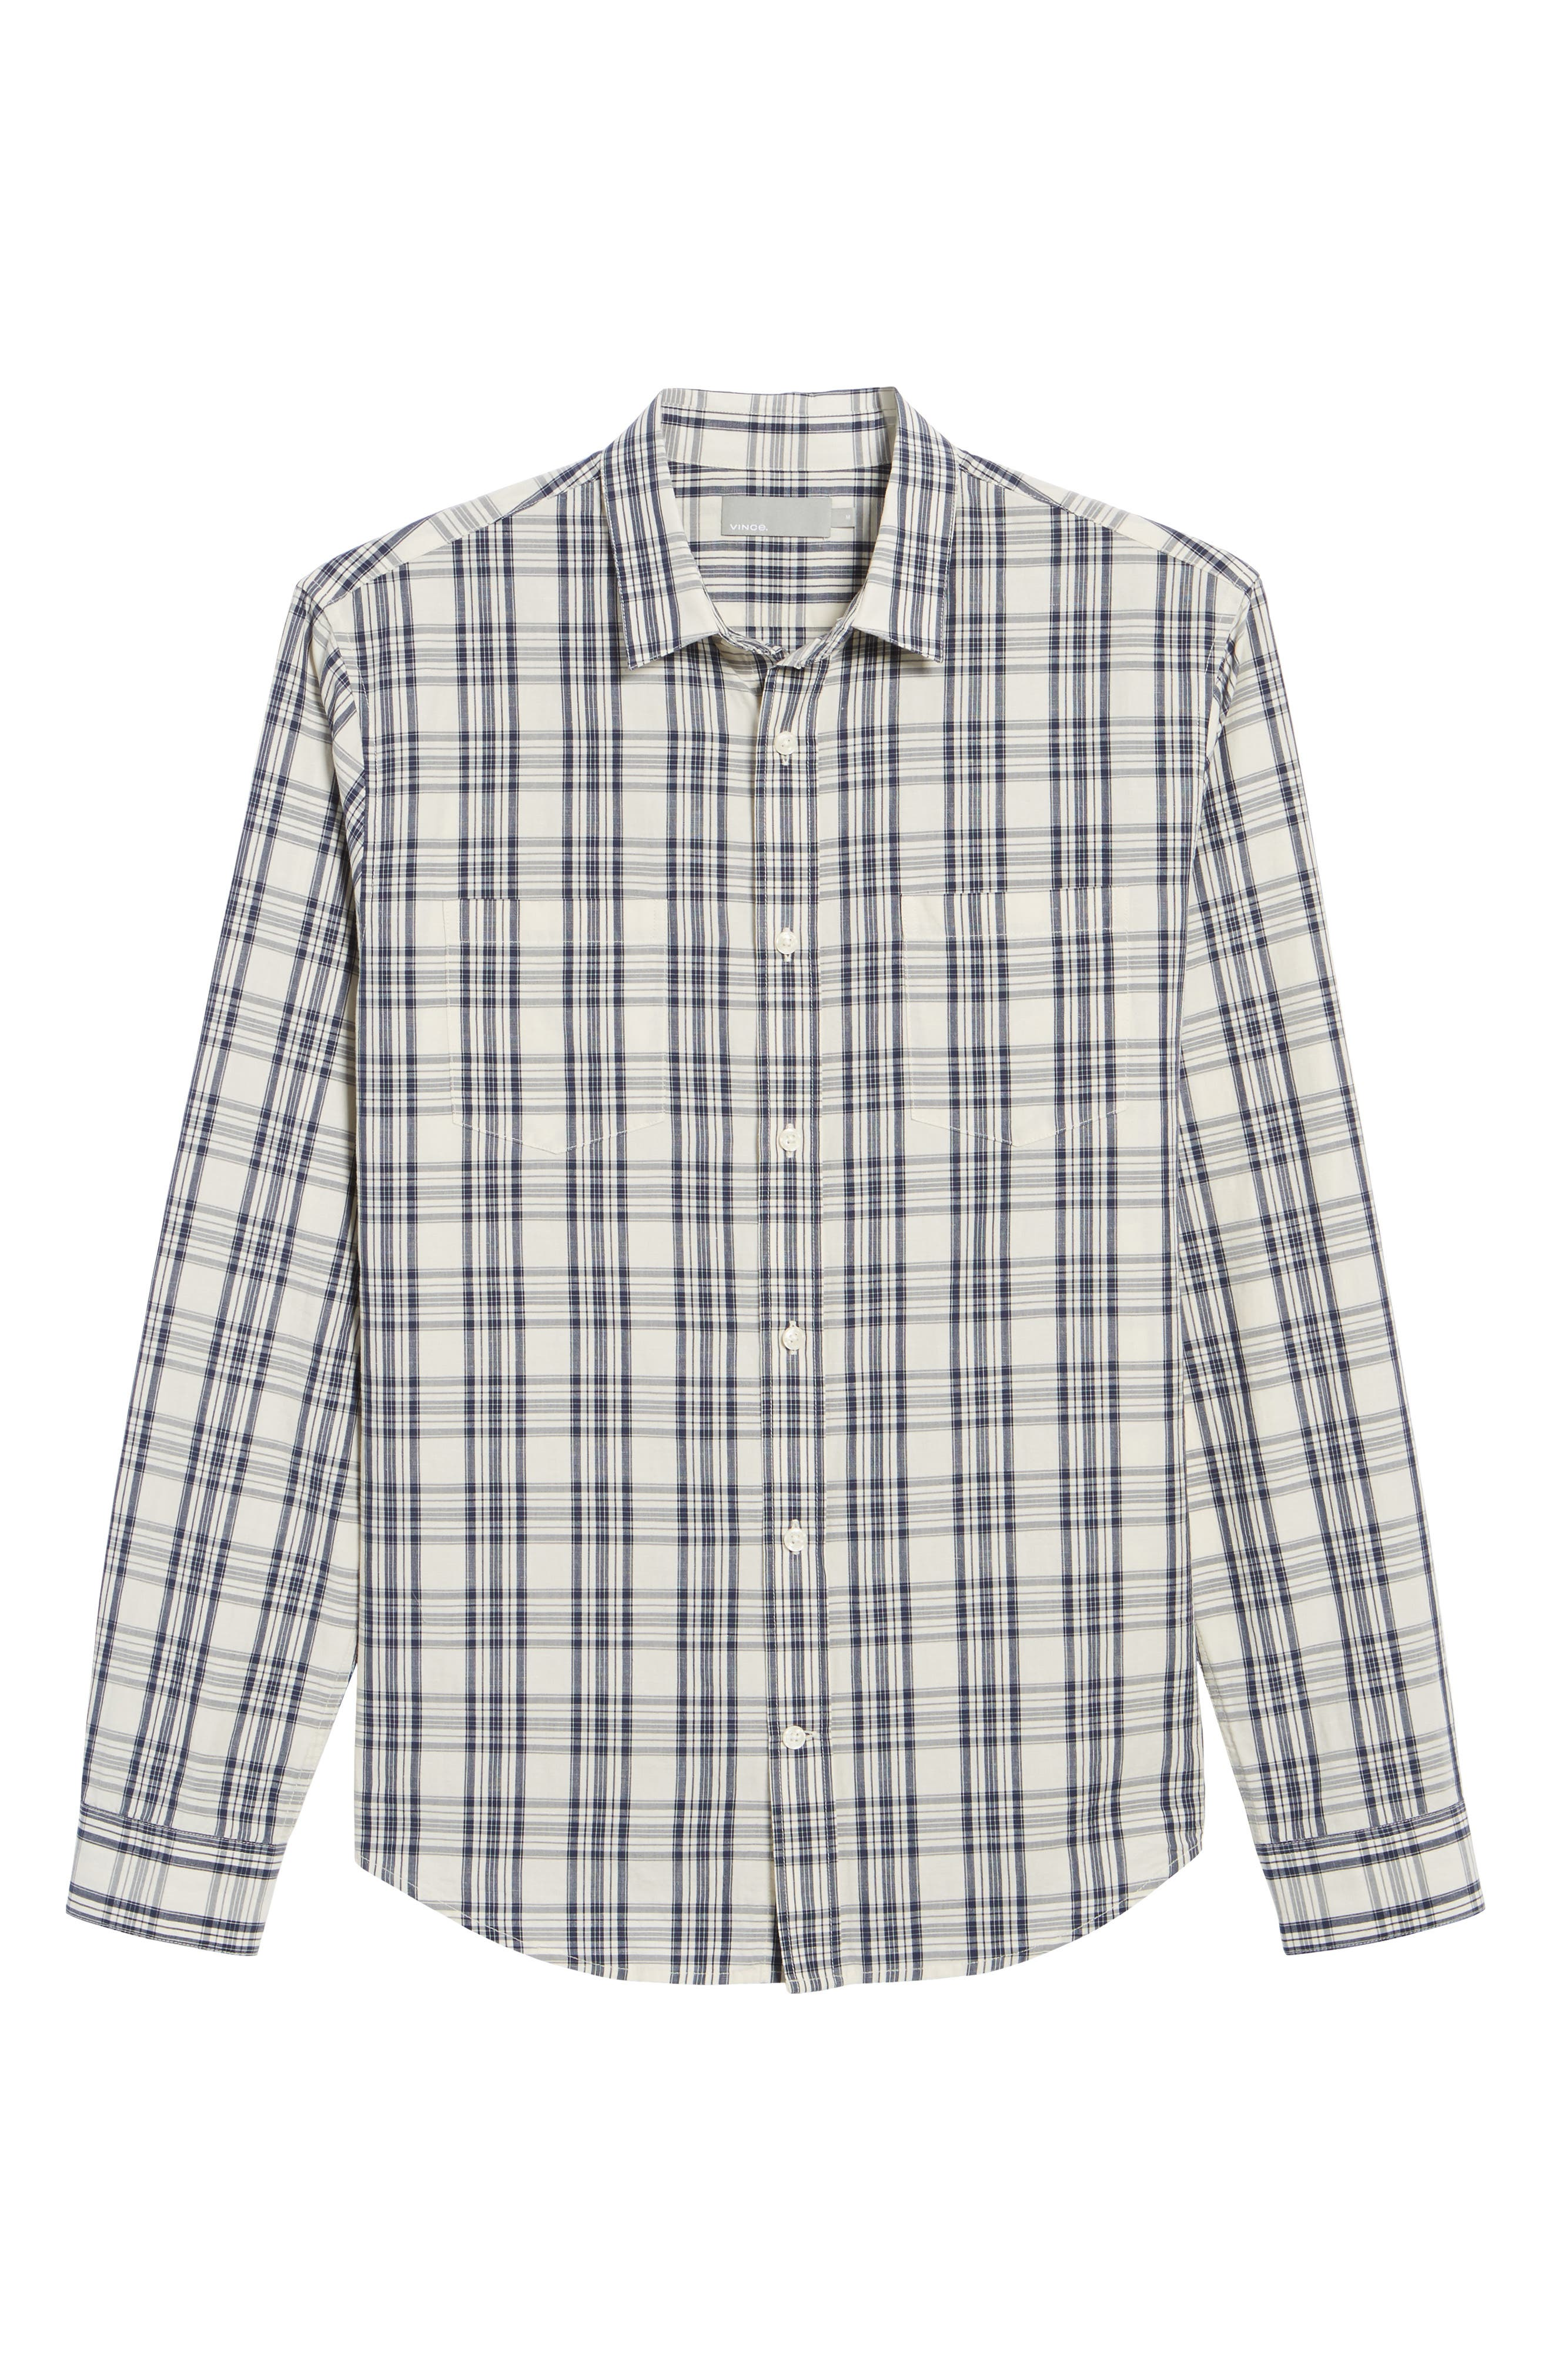 Slim Fit Plaid Sport Shirt,                             Alternate thumbnail 6, color,                             Charcoal